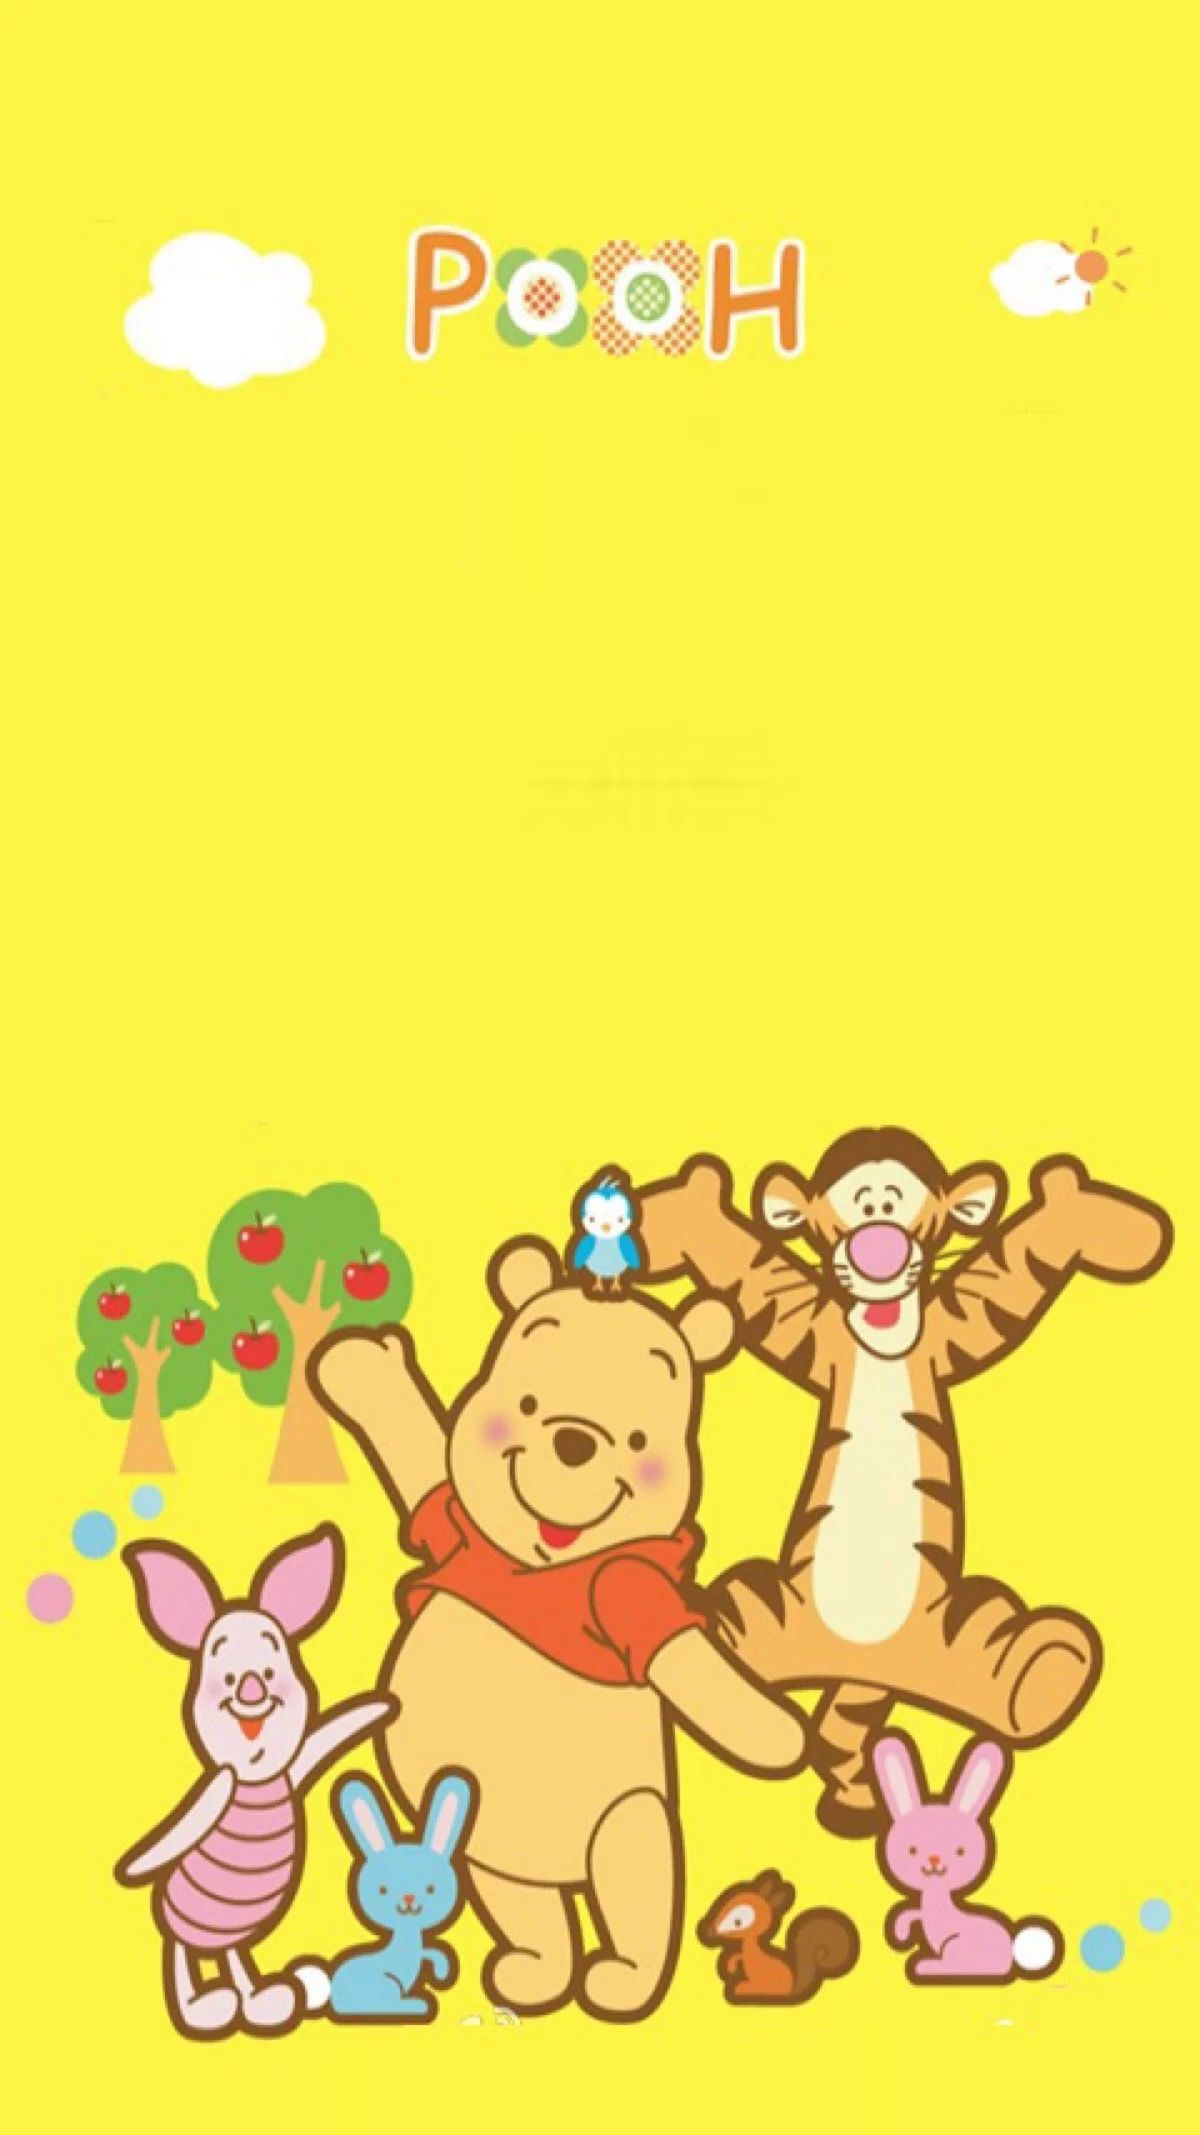 pinpankeawป่านแก้ว on wallpaper disney | pinterest | wallpaper